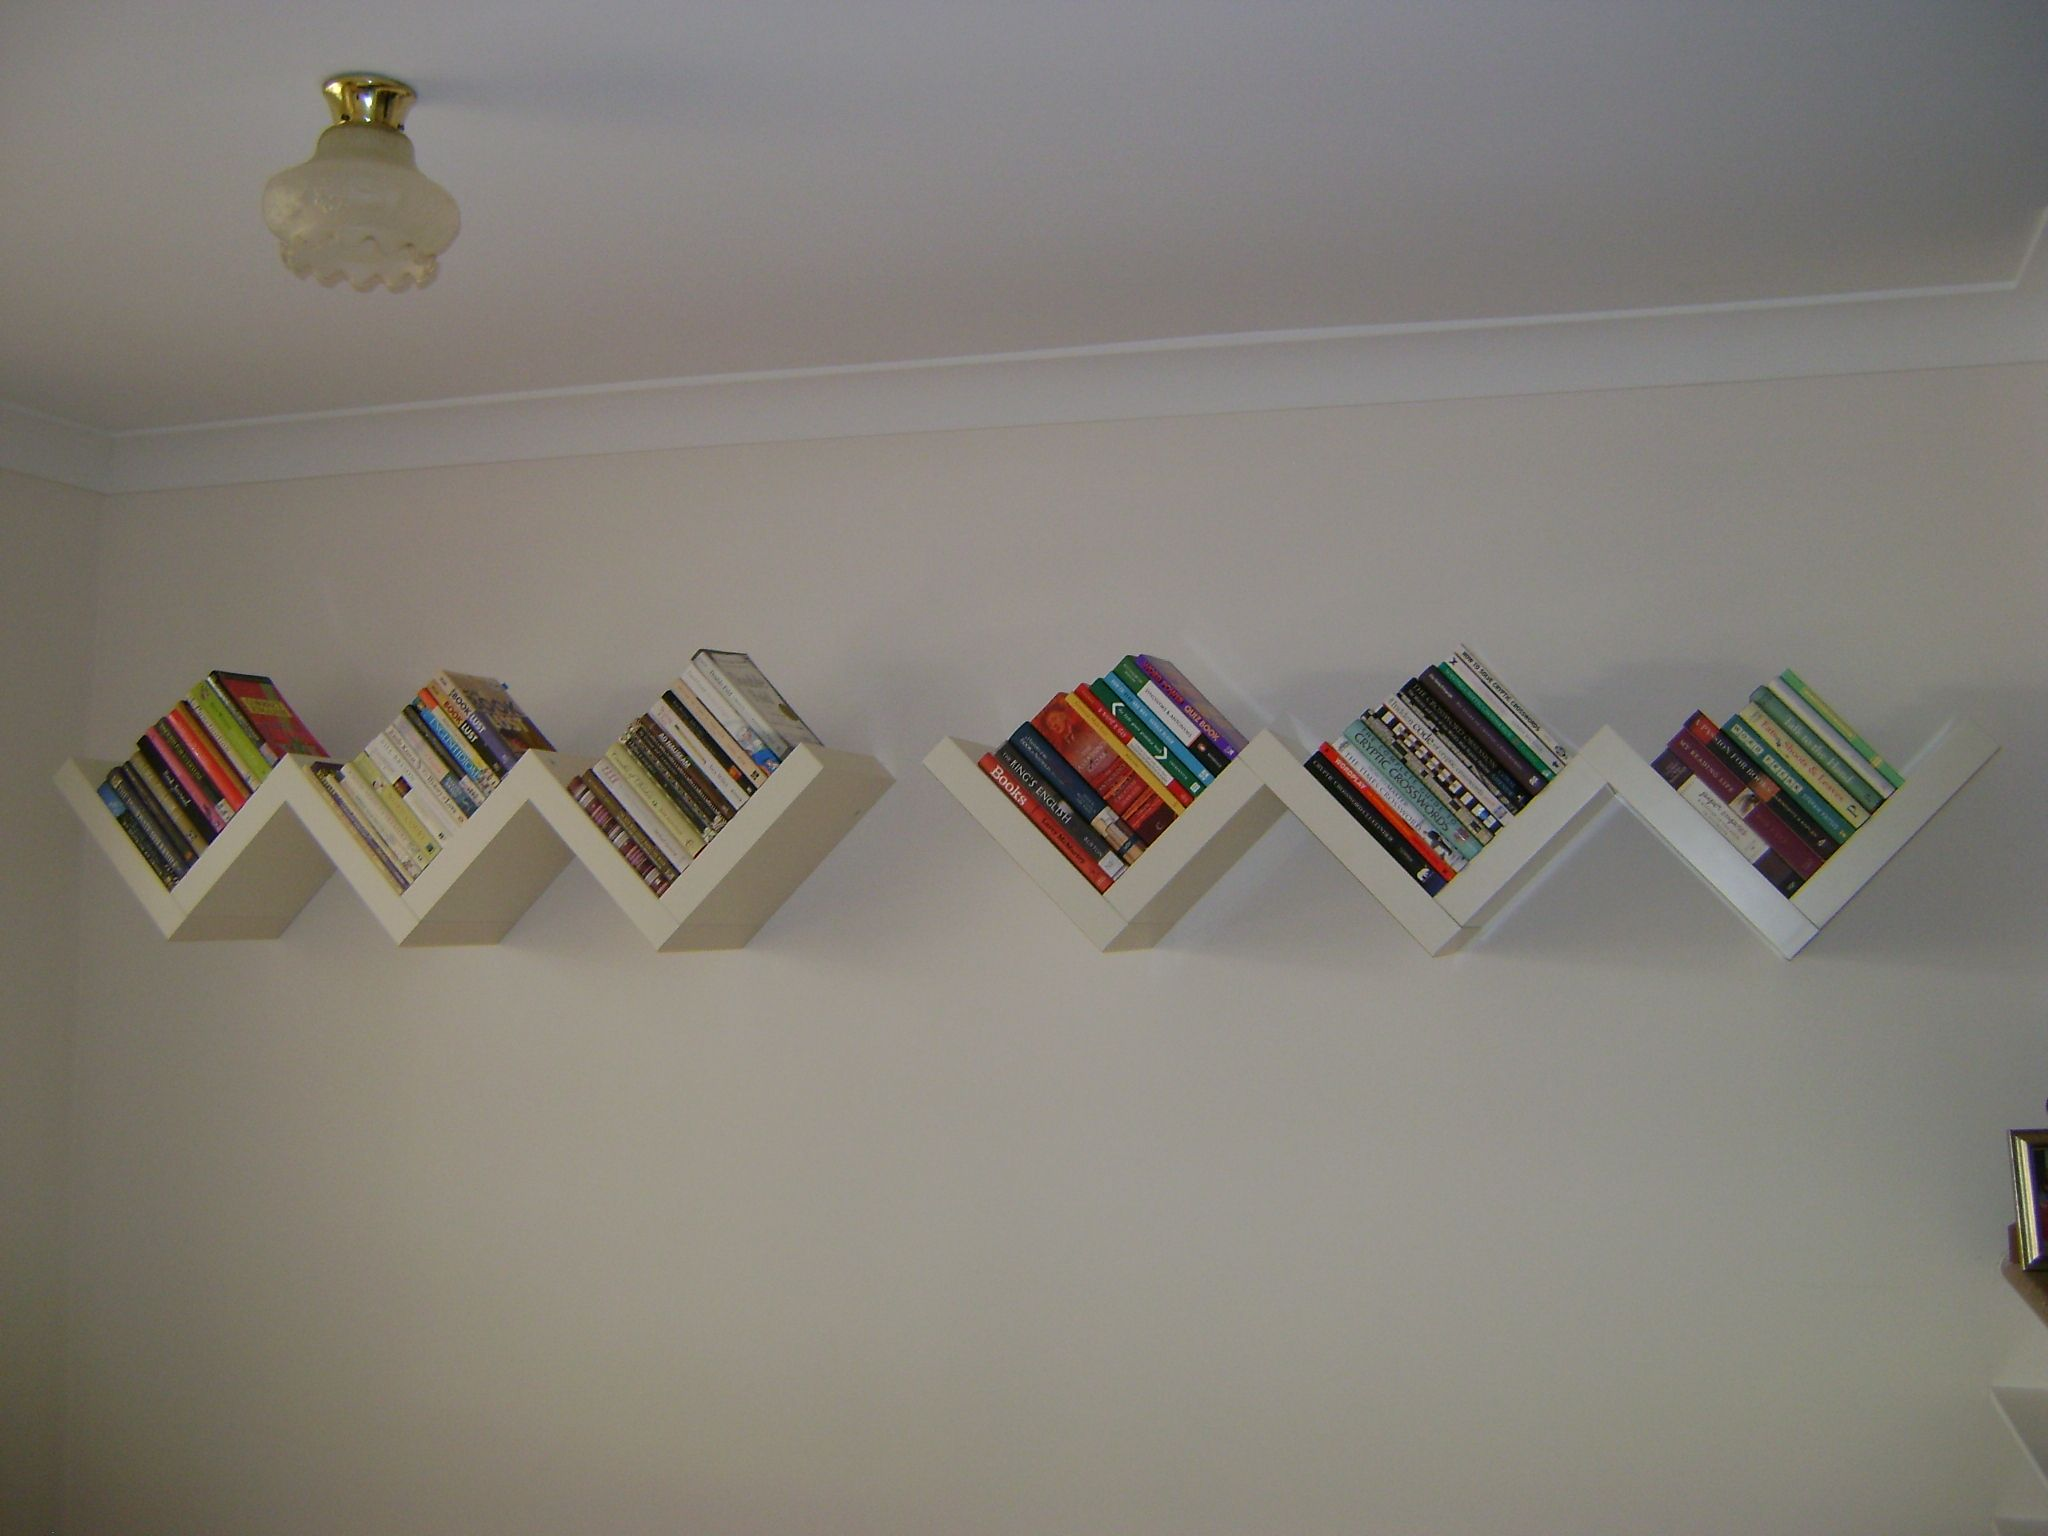 This Is My Ikea Lack Wall Mounted Book Shelves I Love The Look Of Them Particularly The Way The Books Are Wall Bookshelves Wall Mounted Bookshelves Ikea Book